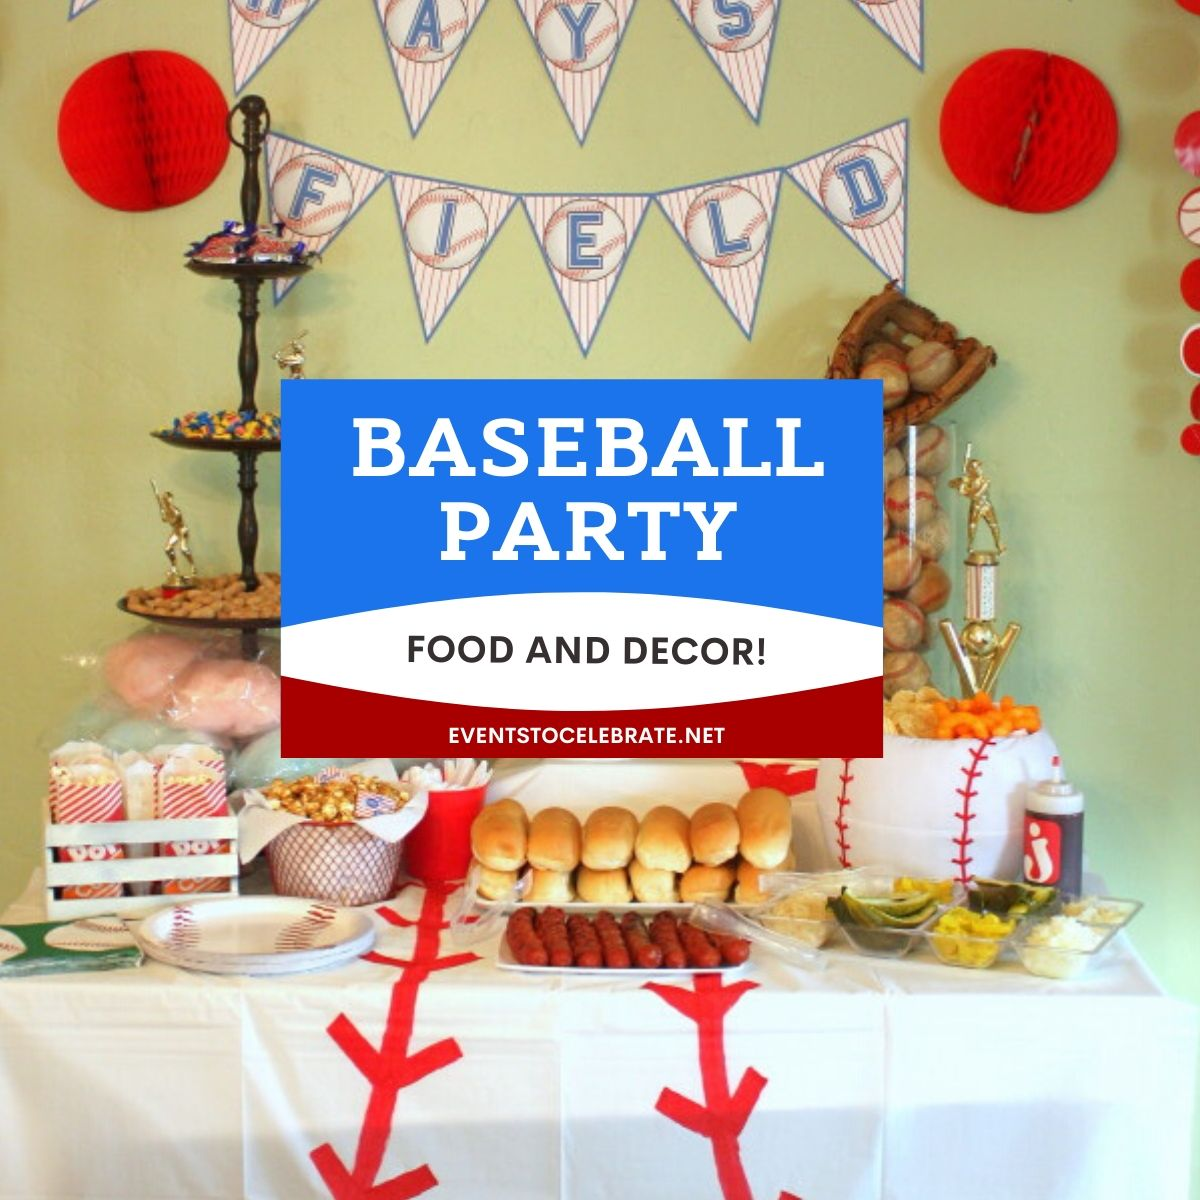 baseball party food and decor square